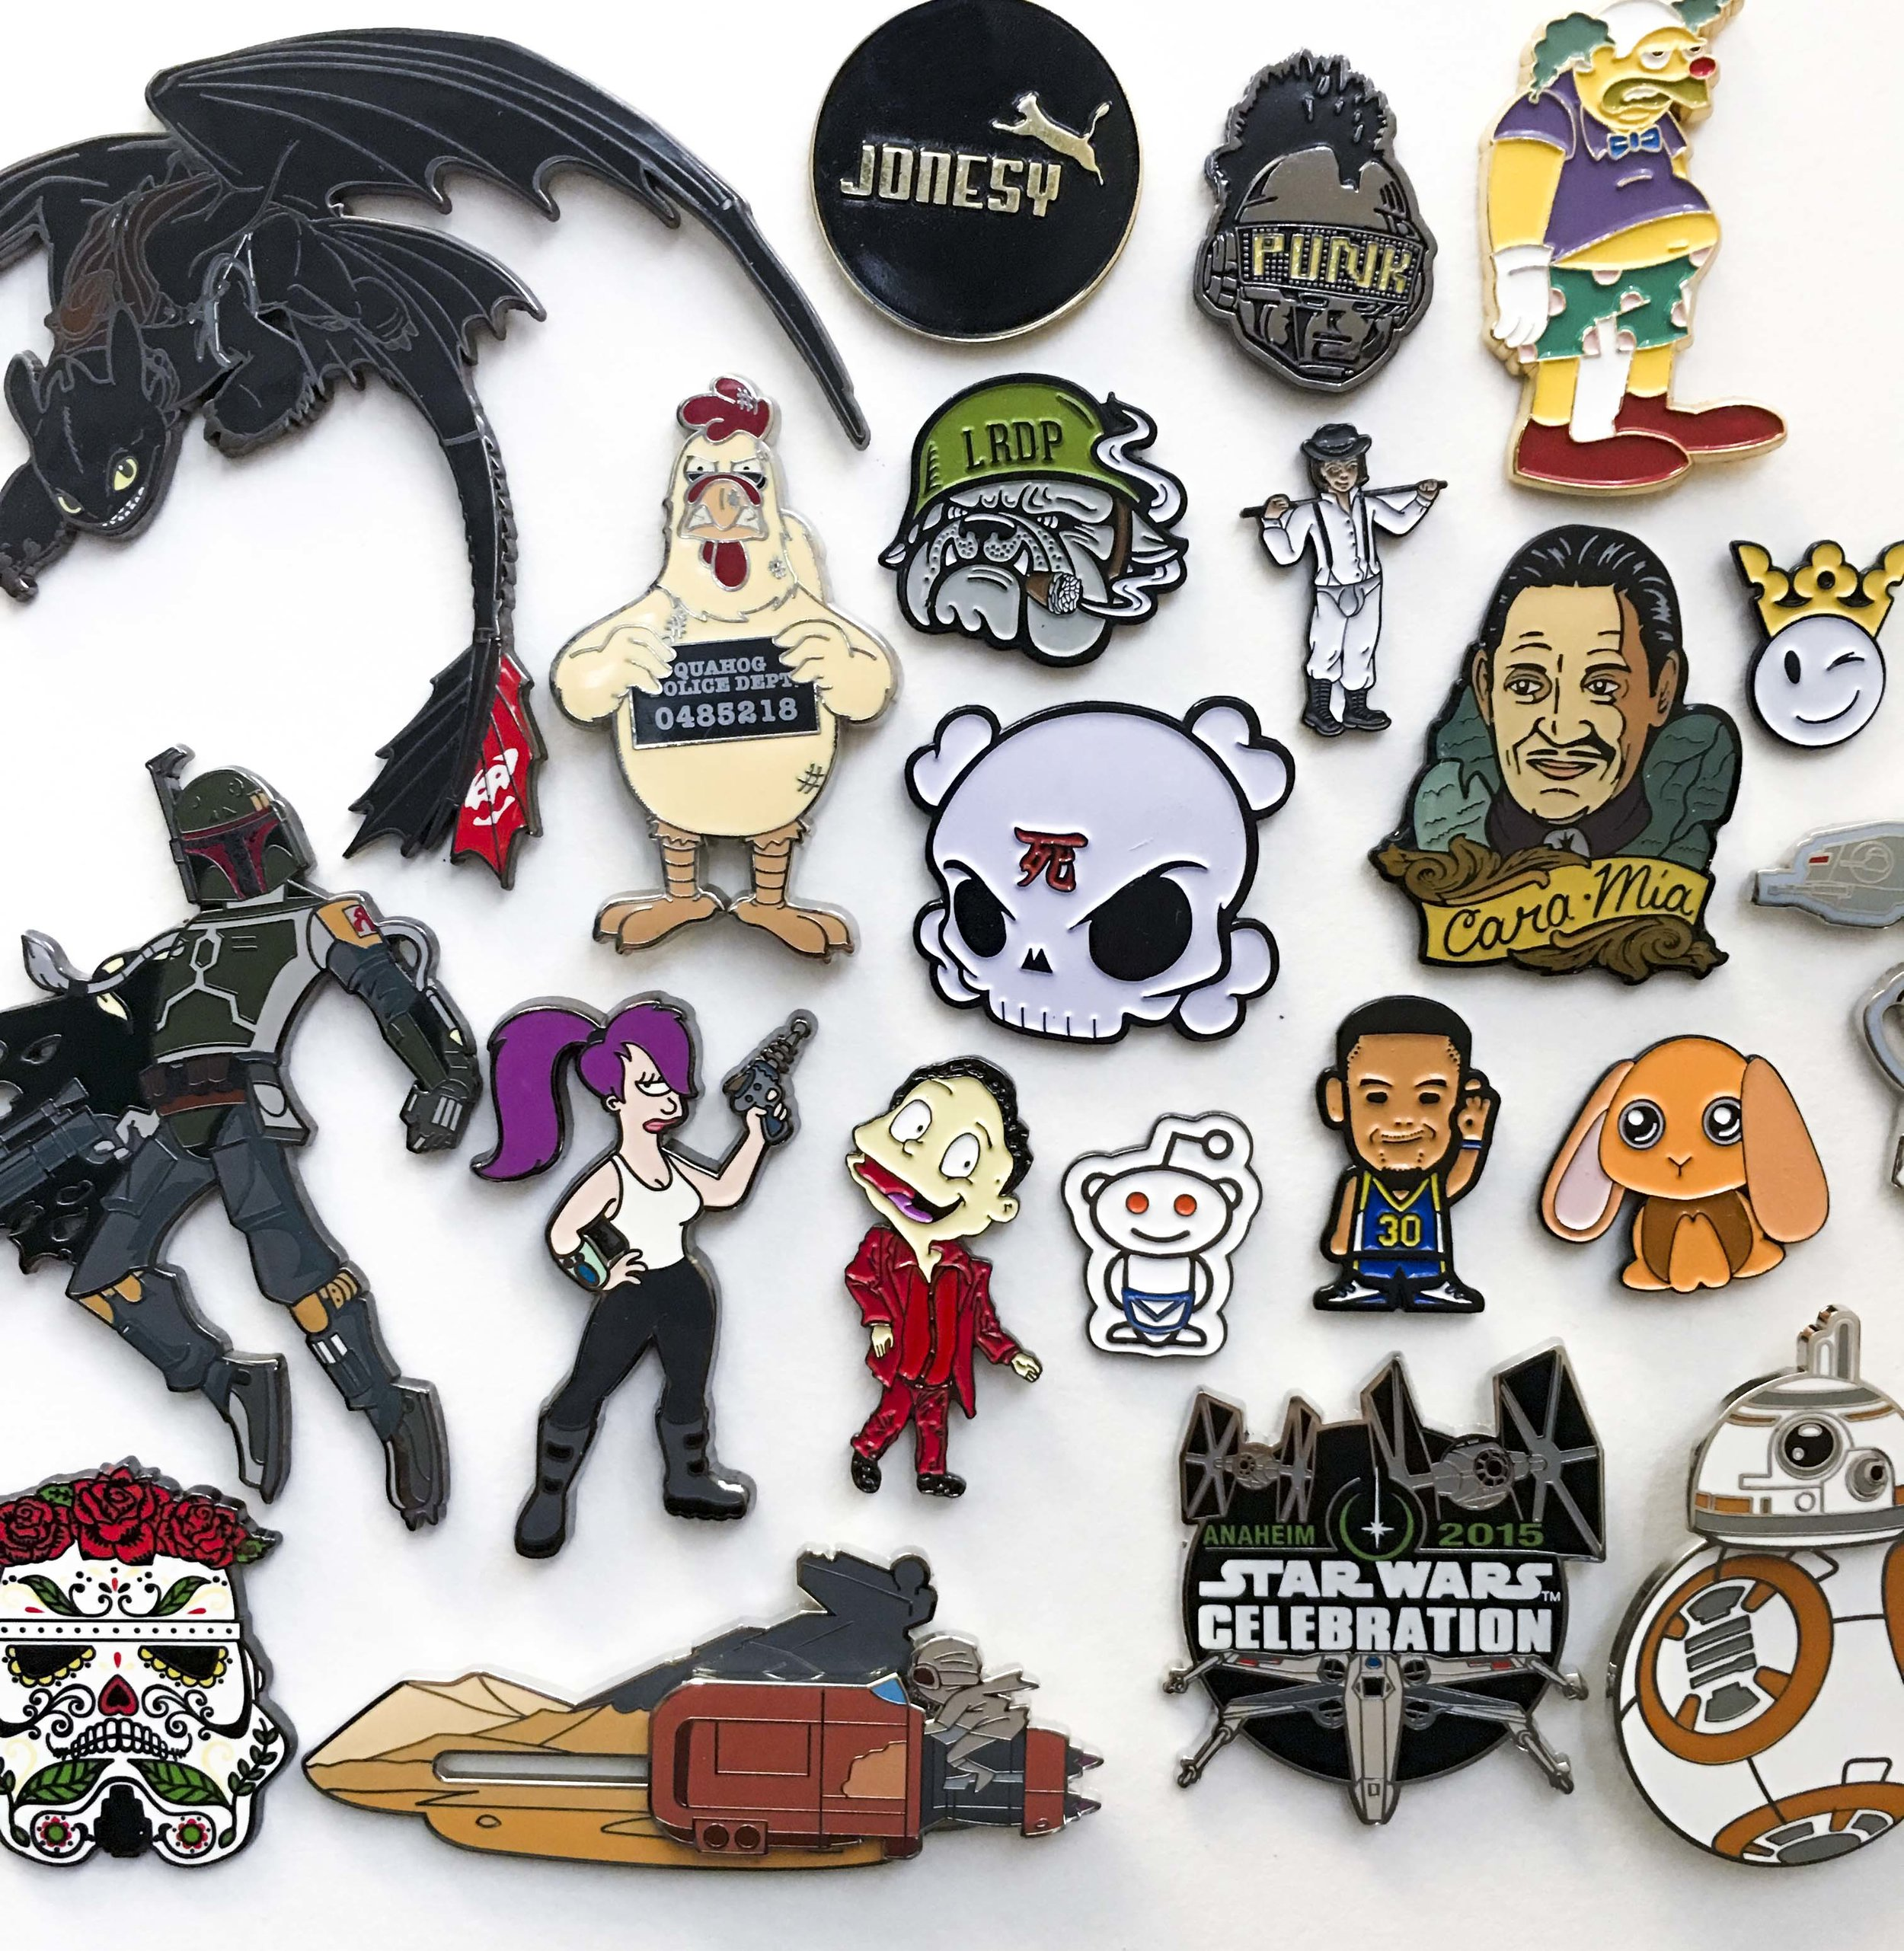 Lapel pins! - Whether it's collecting, branding, or just making something cool to share with your friends. We can help you get your design made into a metal lapel pin. From soft enamel, hard enamel, and flat printing, let us know how you want to show off your design.